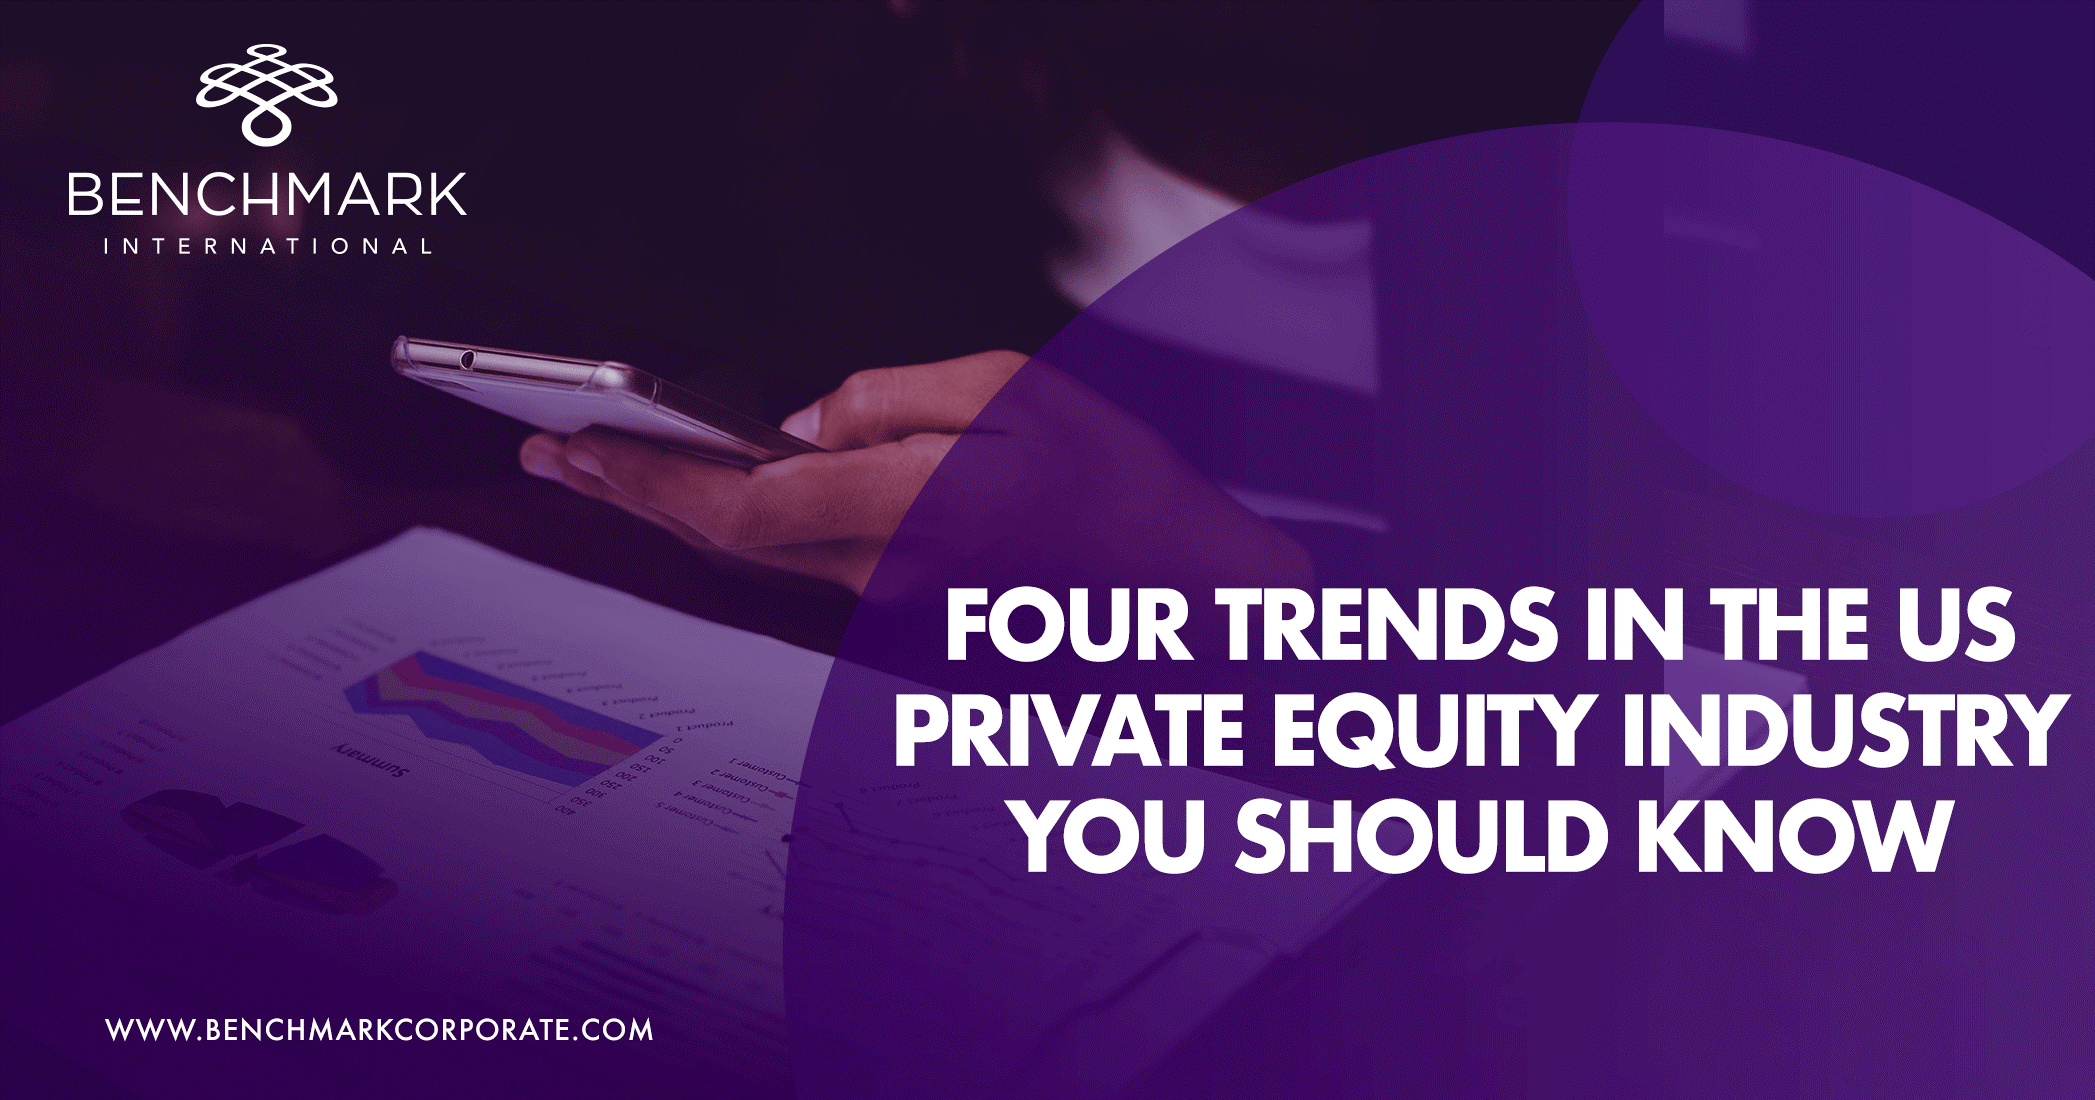 Four Trends in the US Private Equity Industry You Should Know About